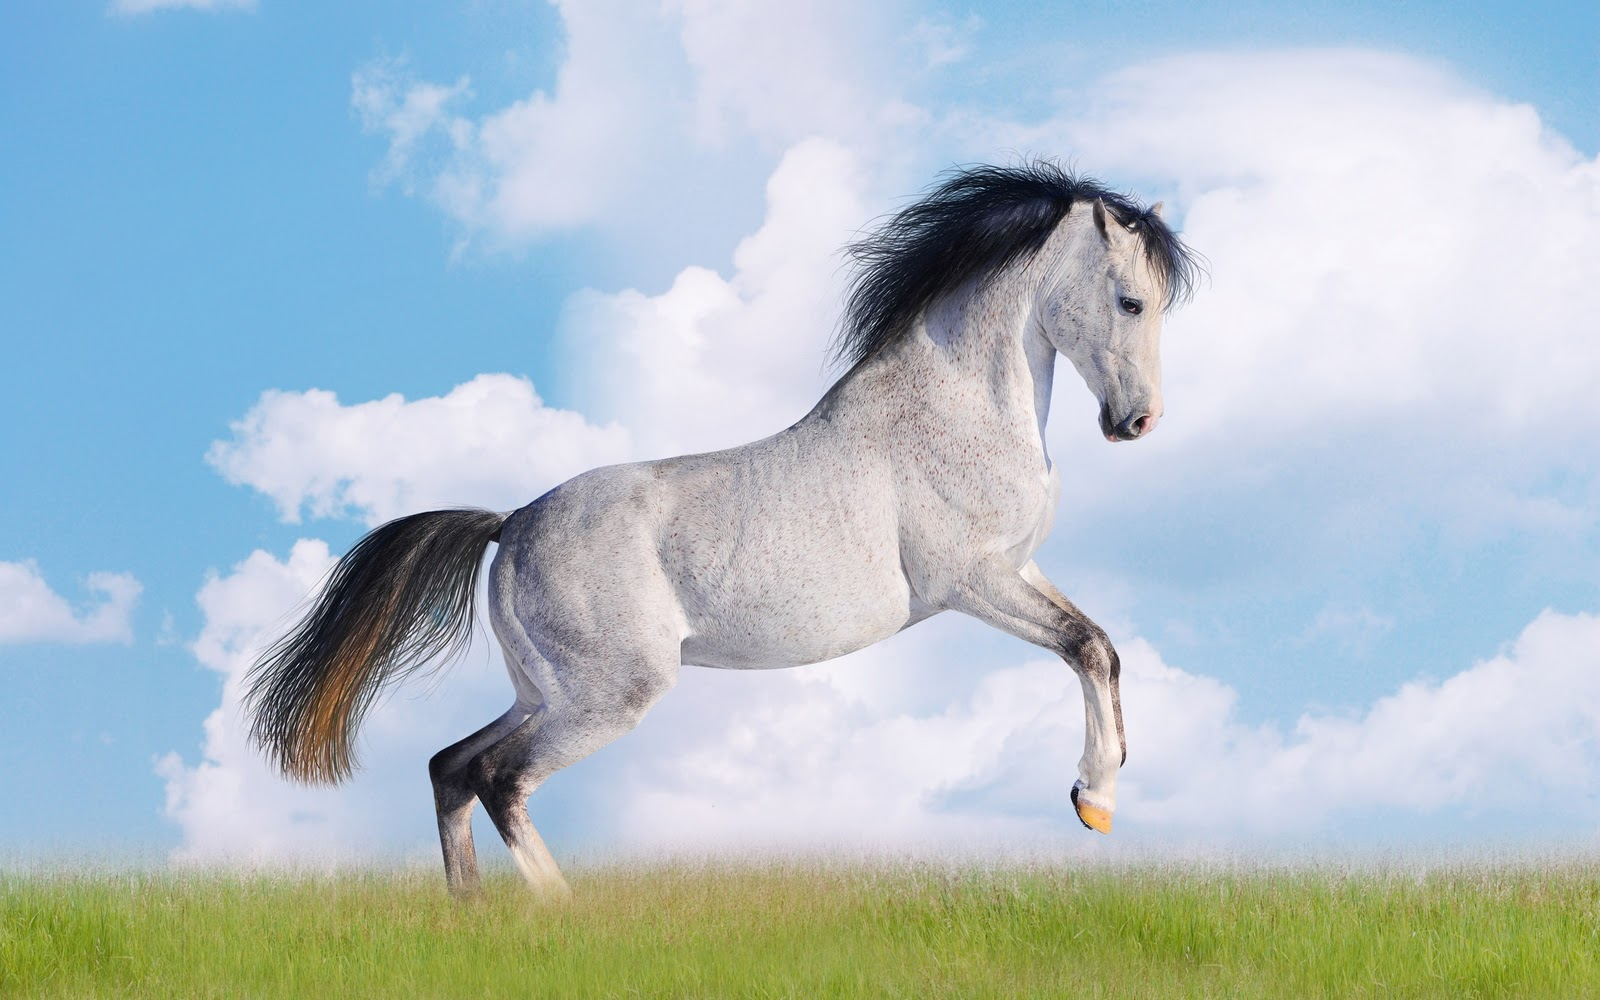 Amazing   Wallpaper Horse Nature - White_Horse_Desktop_WallpaperS_Download  Collection_46378.jpg